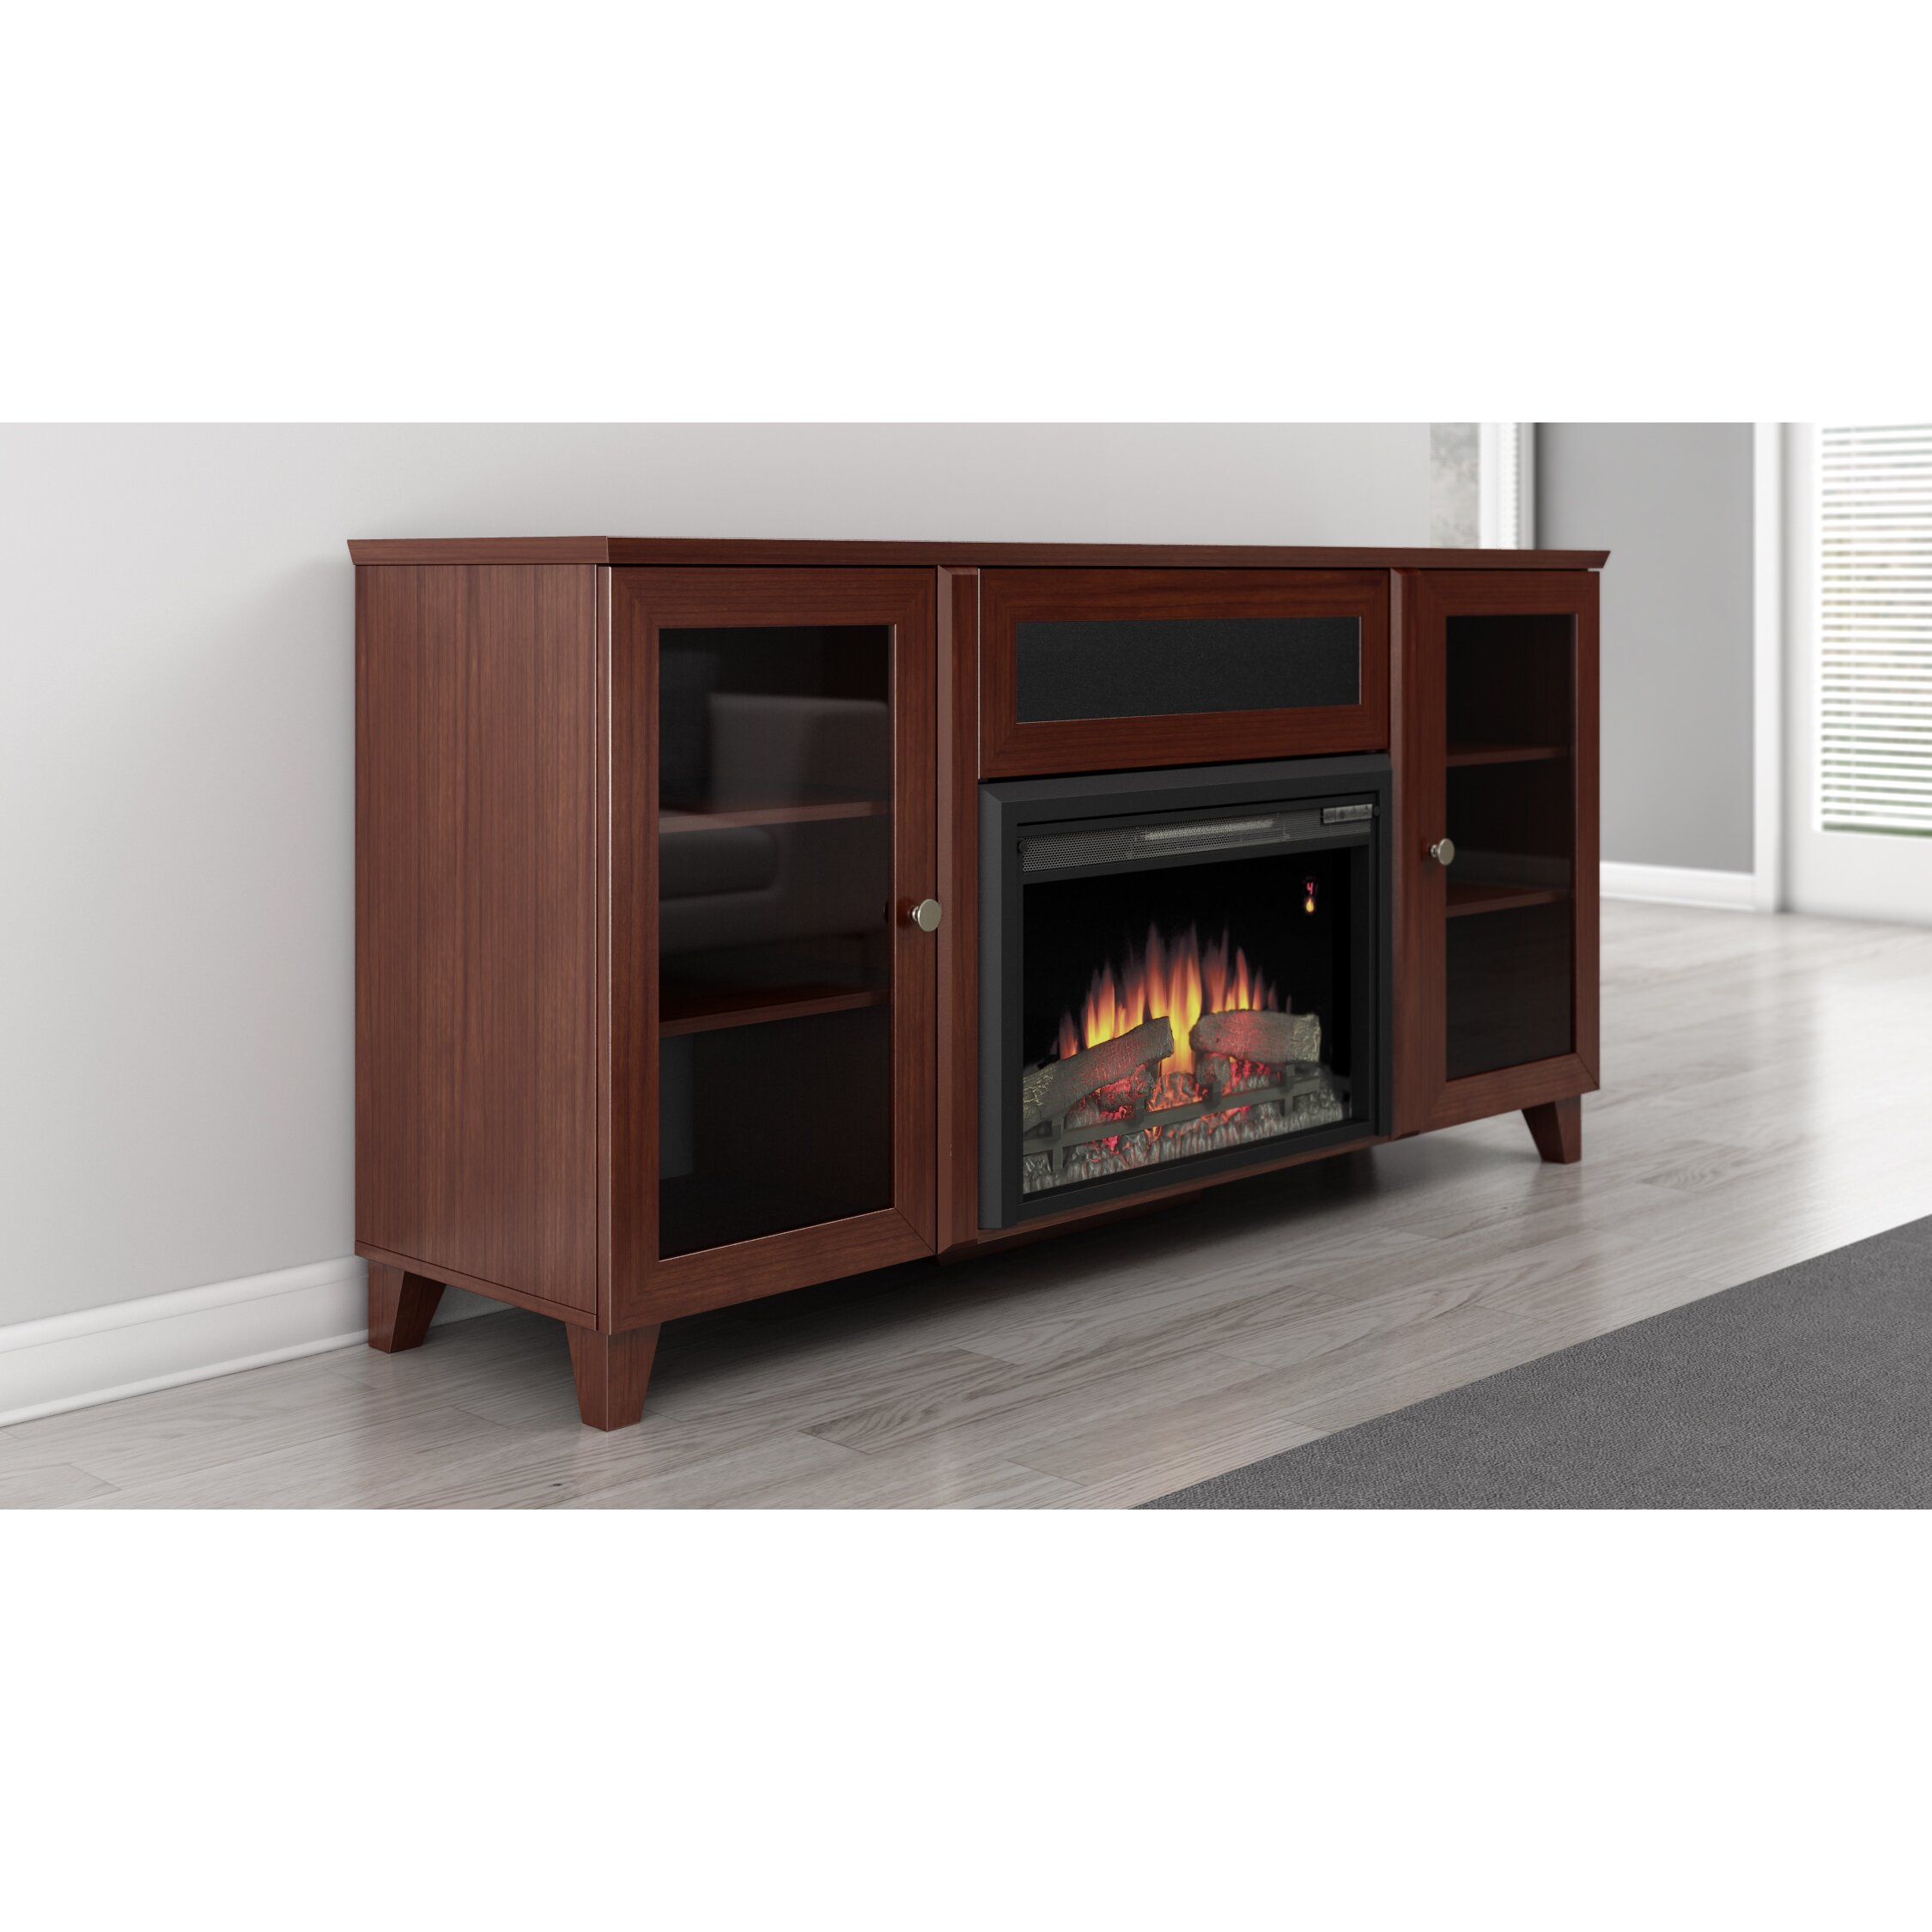 furnitech shaker style tv stand with electric fireplace. Black Bedroom Furniture Sets. Home Design Ideas